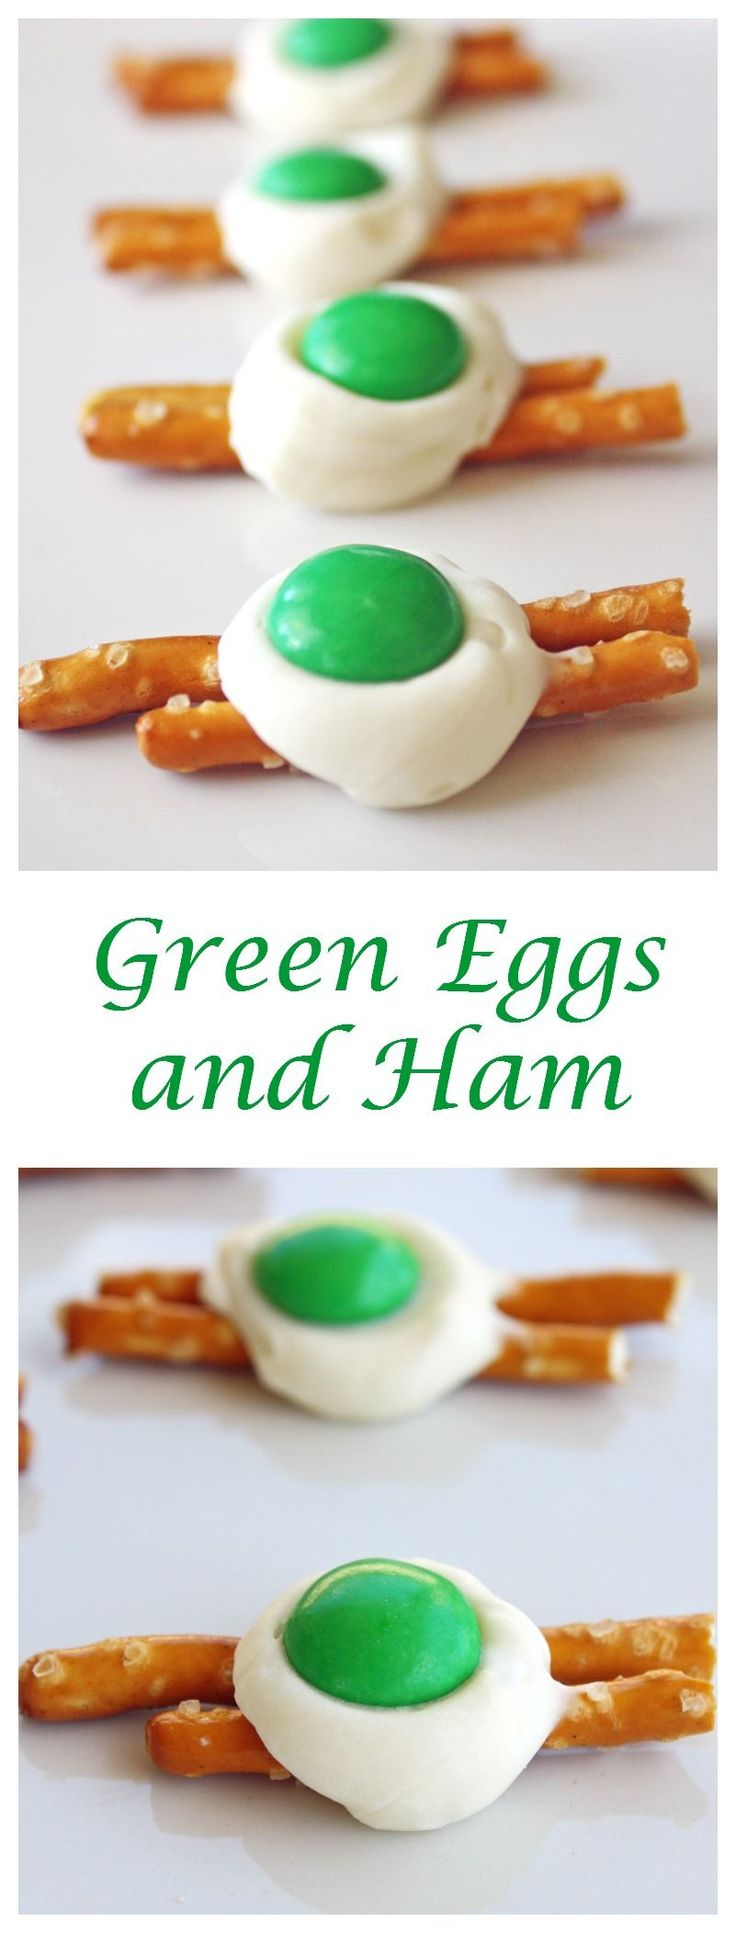 Green Eggs and Ham - A little twist on Green Eggs and Ham. A cute treat for St. Patrick's Day or Dr. Suess' birthday. the-girl-who-ate-everything.com